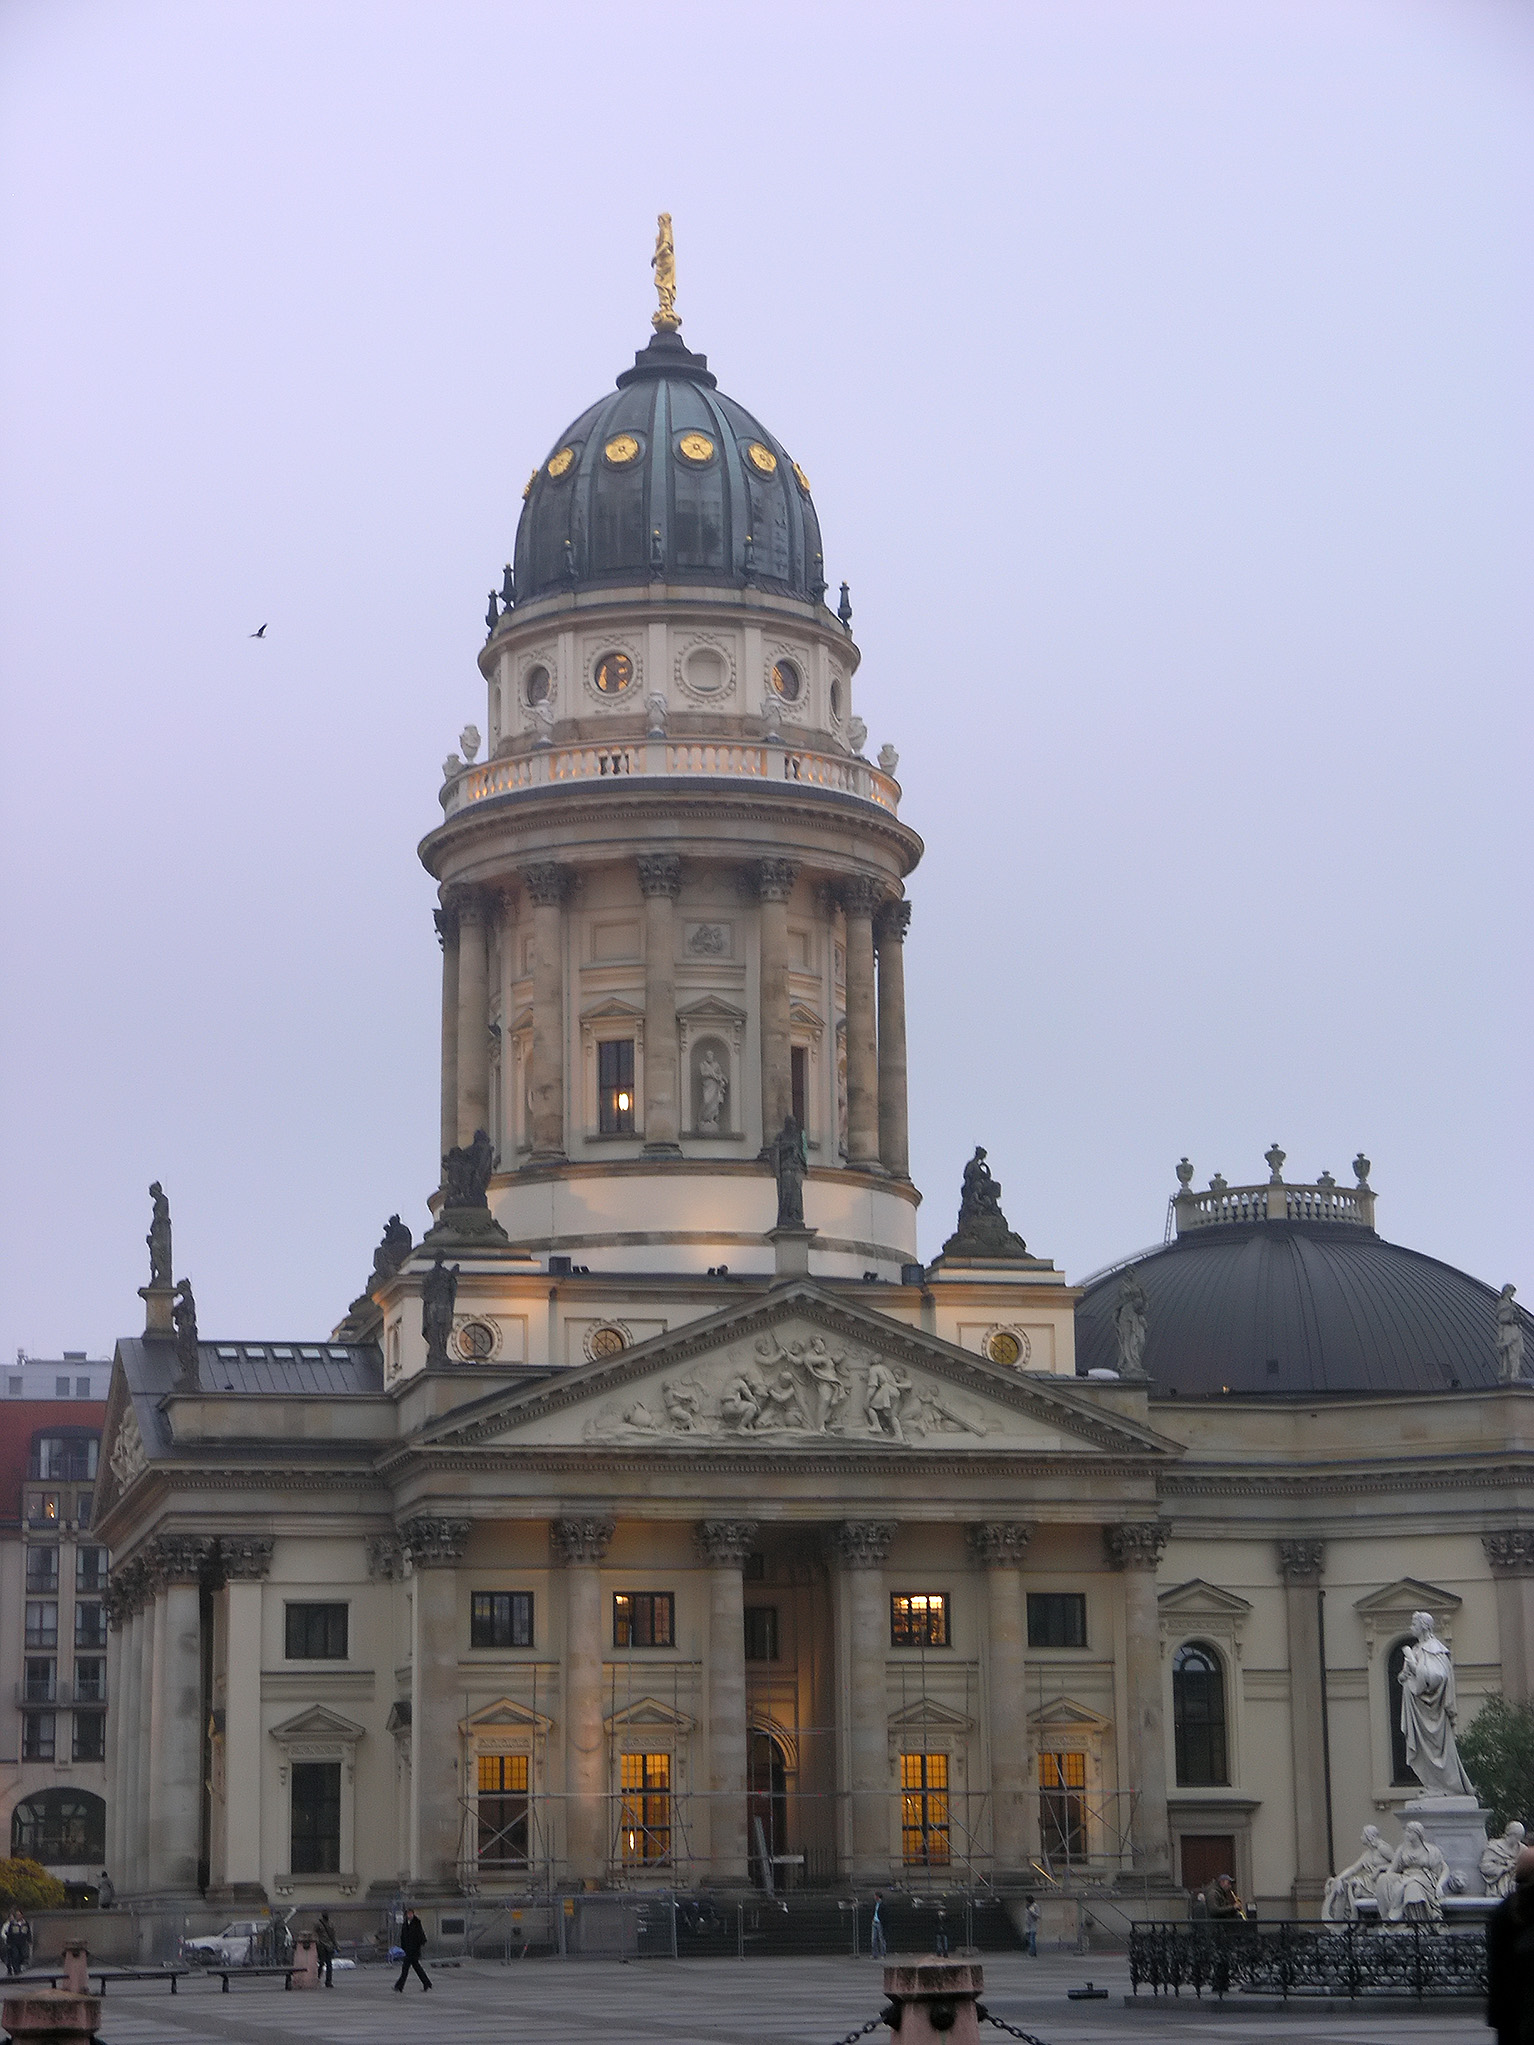 Day 2 - Deutscher Dom on Gendarmenmarkt